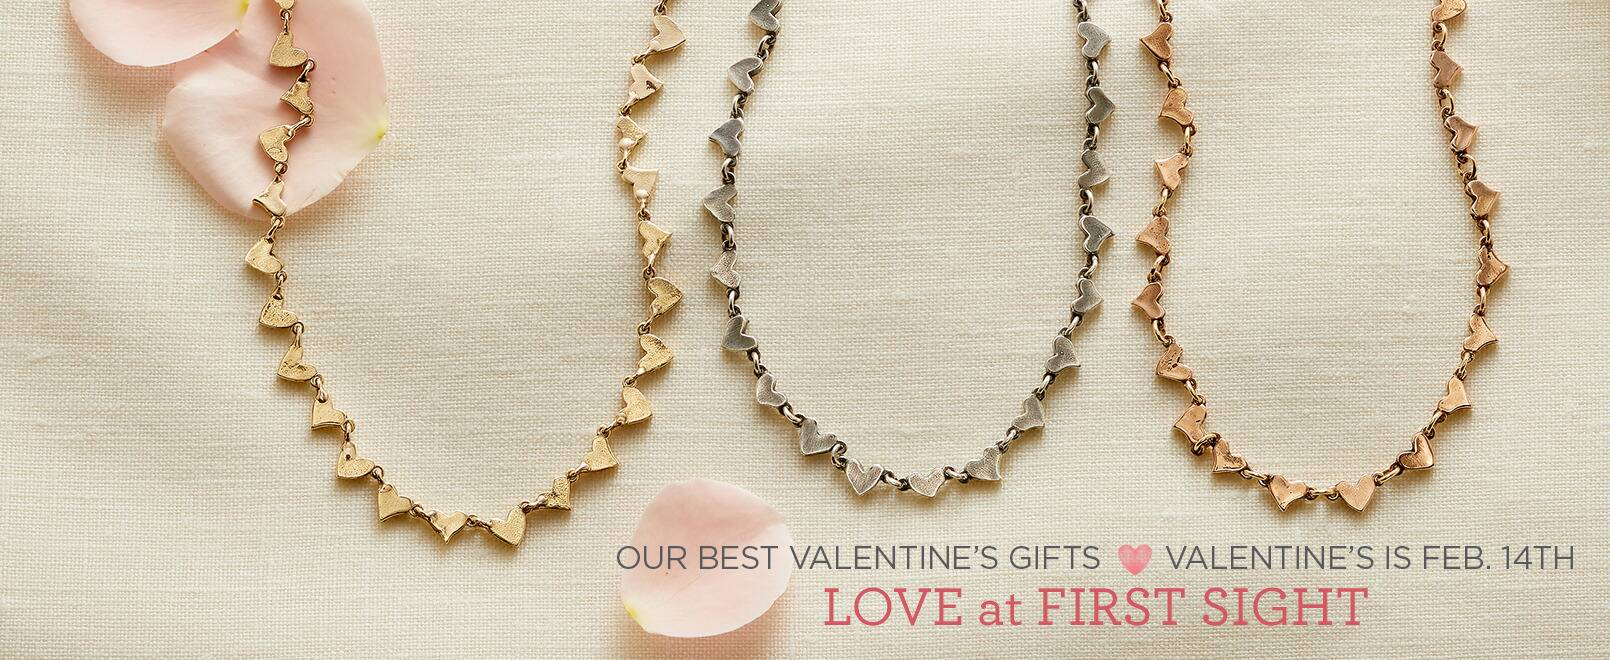 Our Best Valentine's Gifts